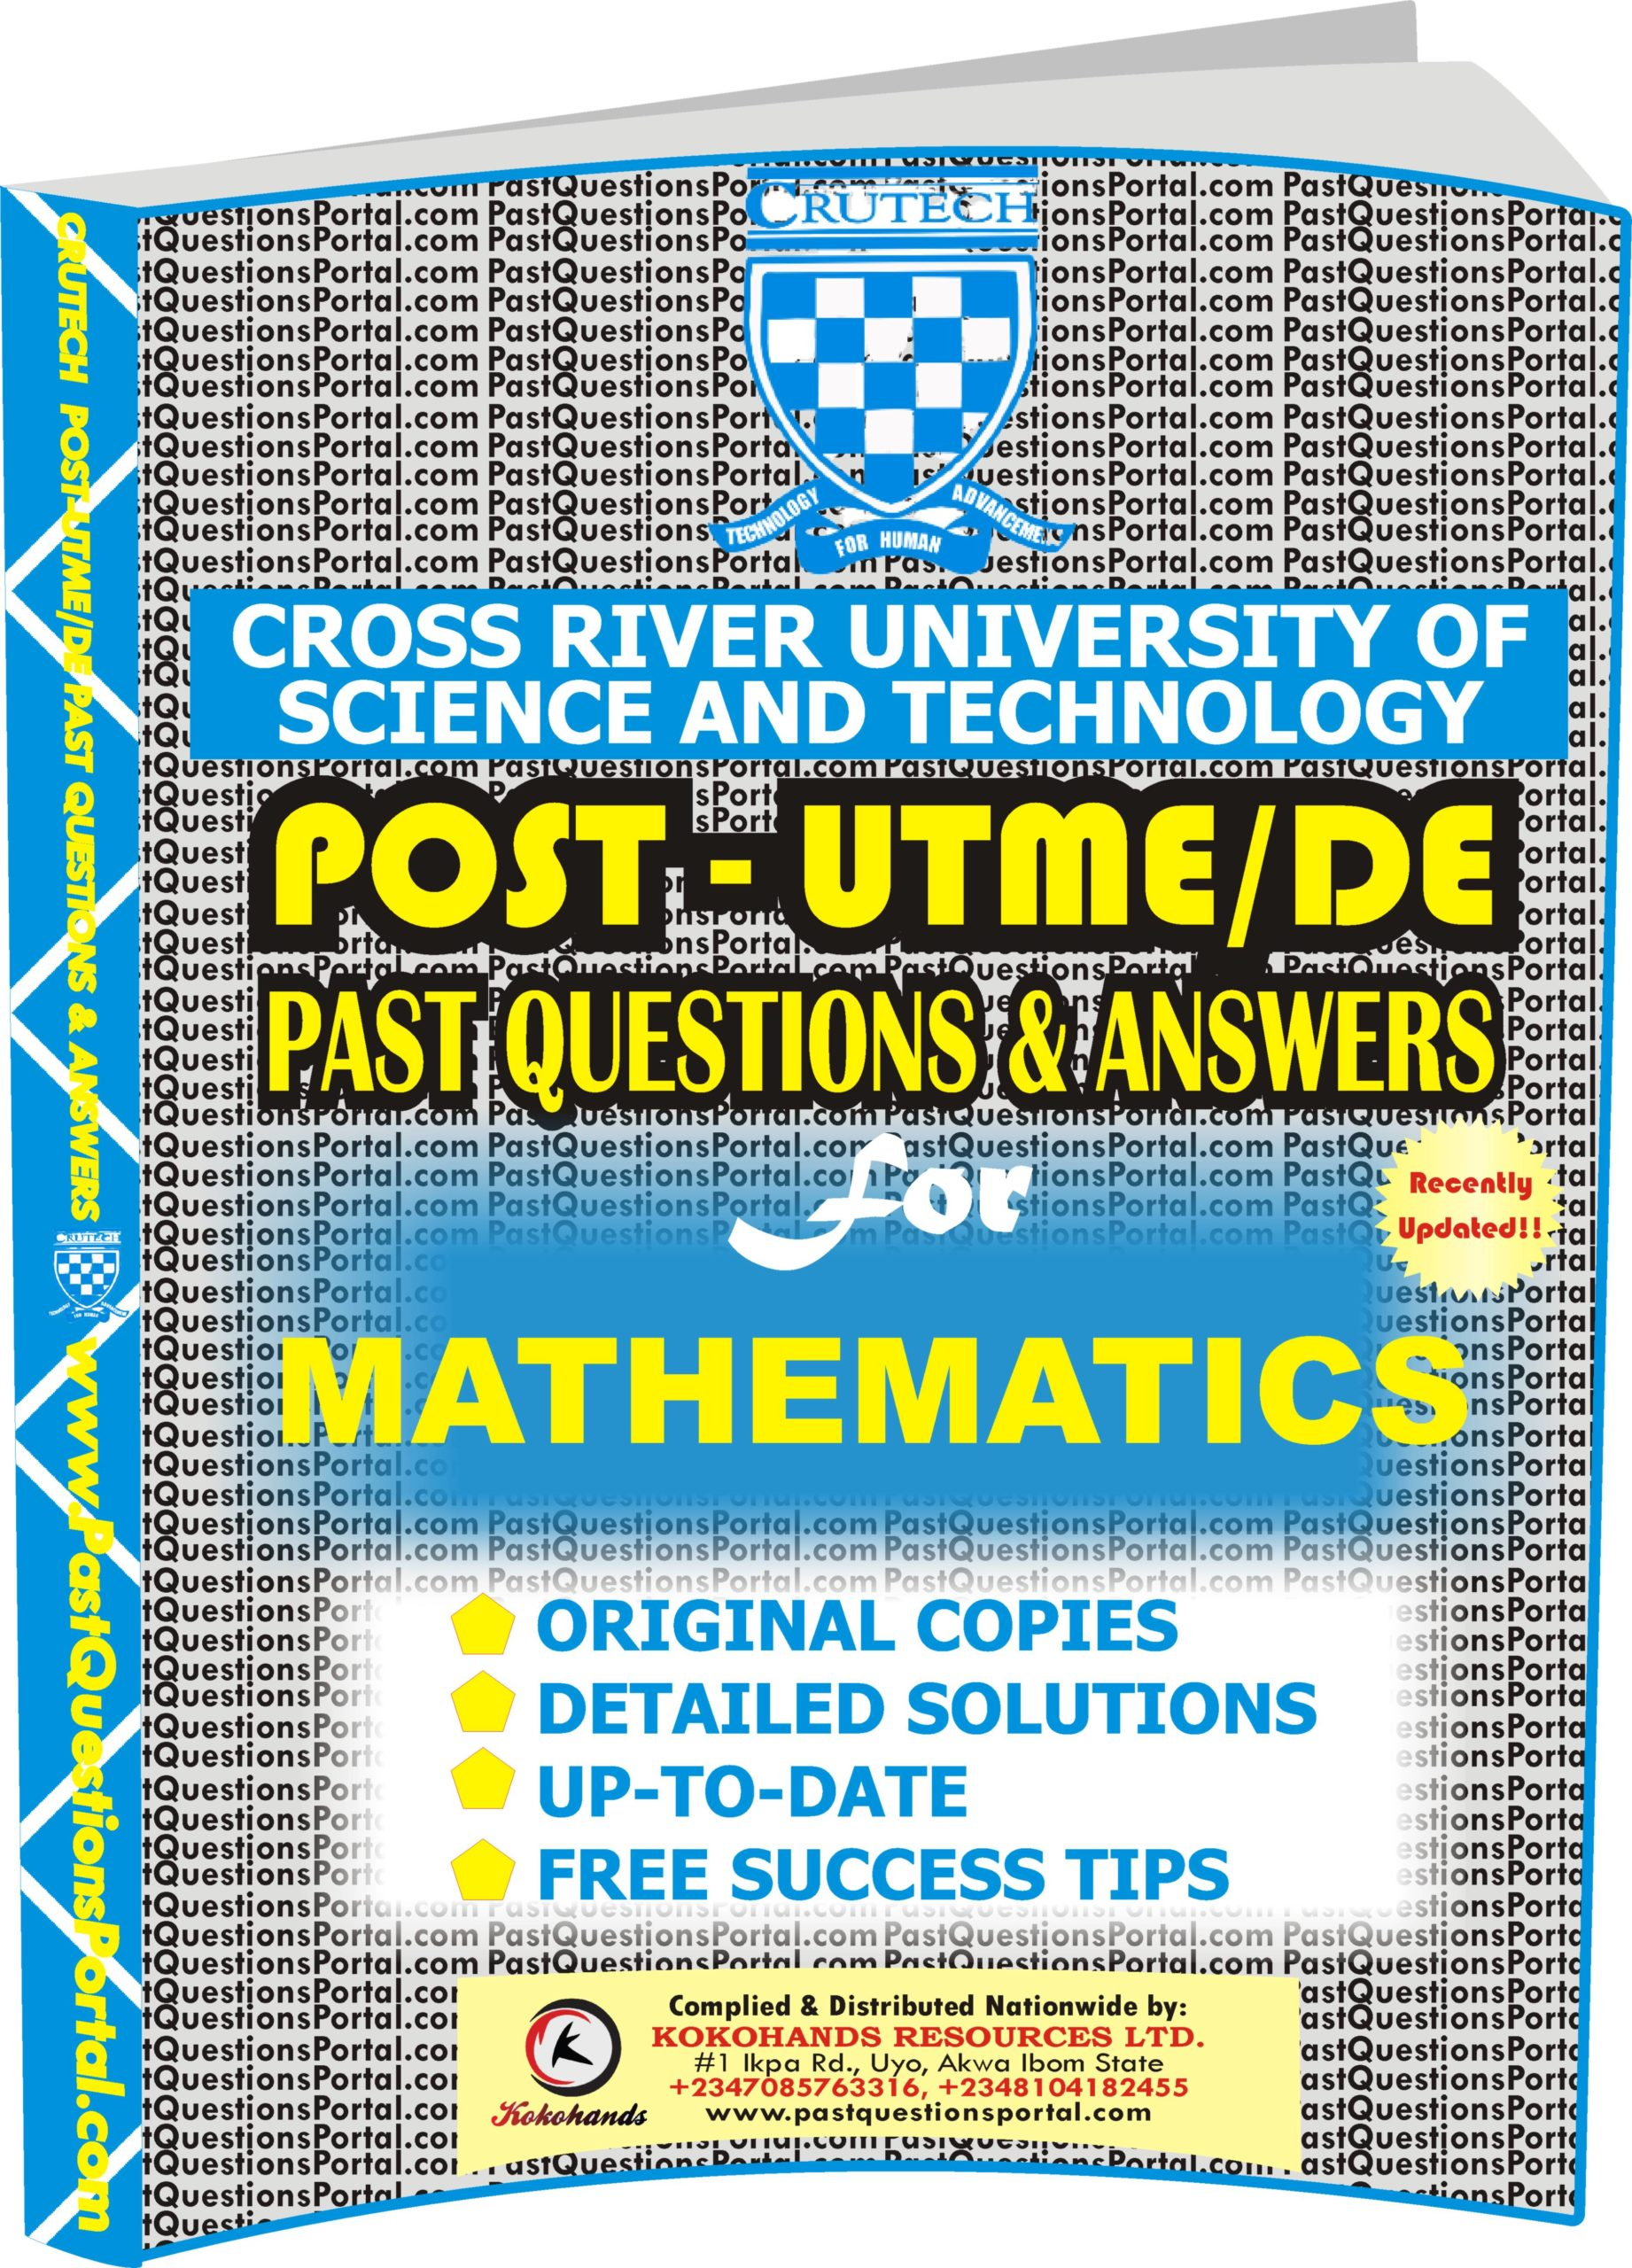 CRUTECH Post UTME Past Questions for MATHEMATICS